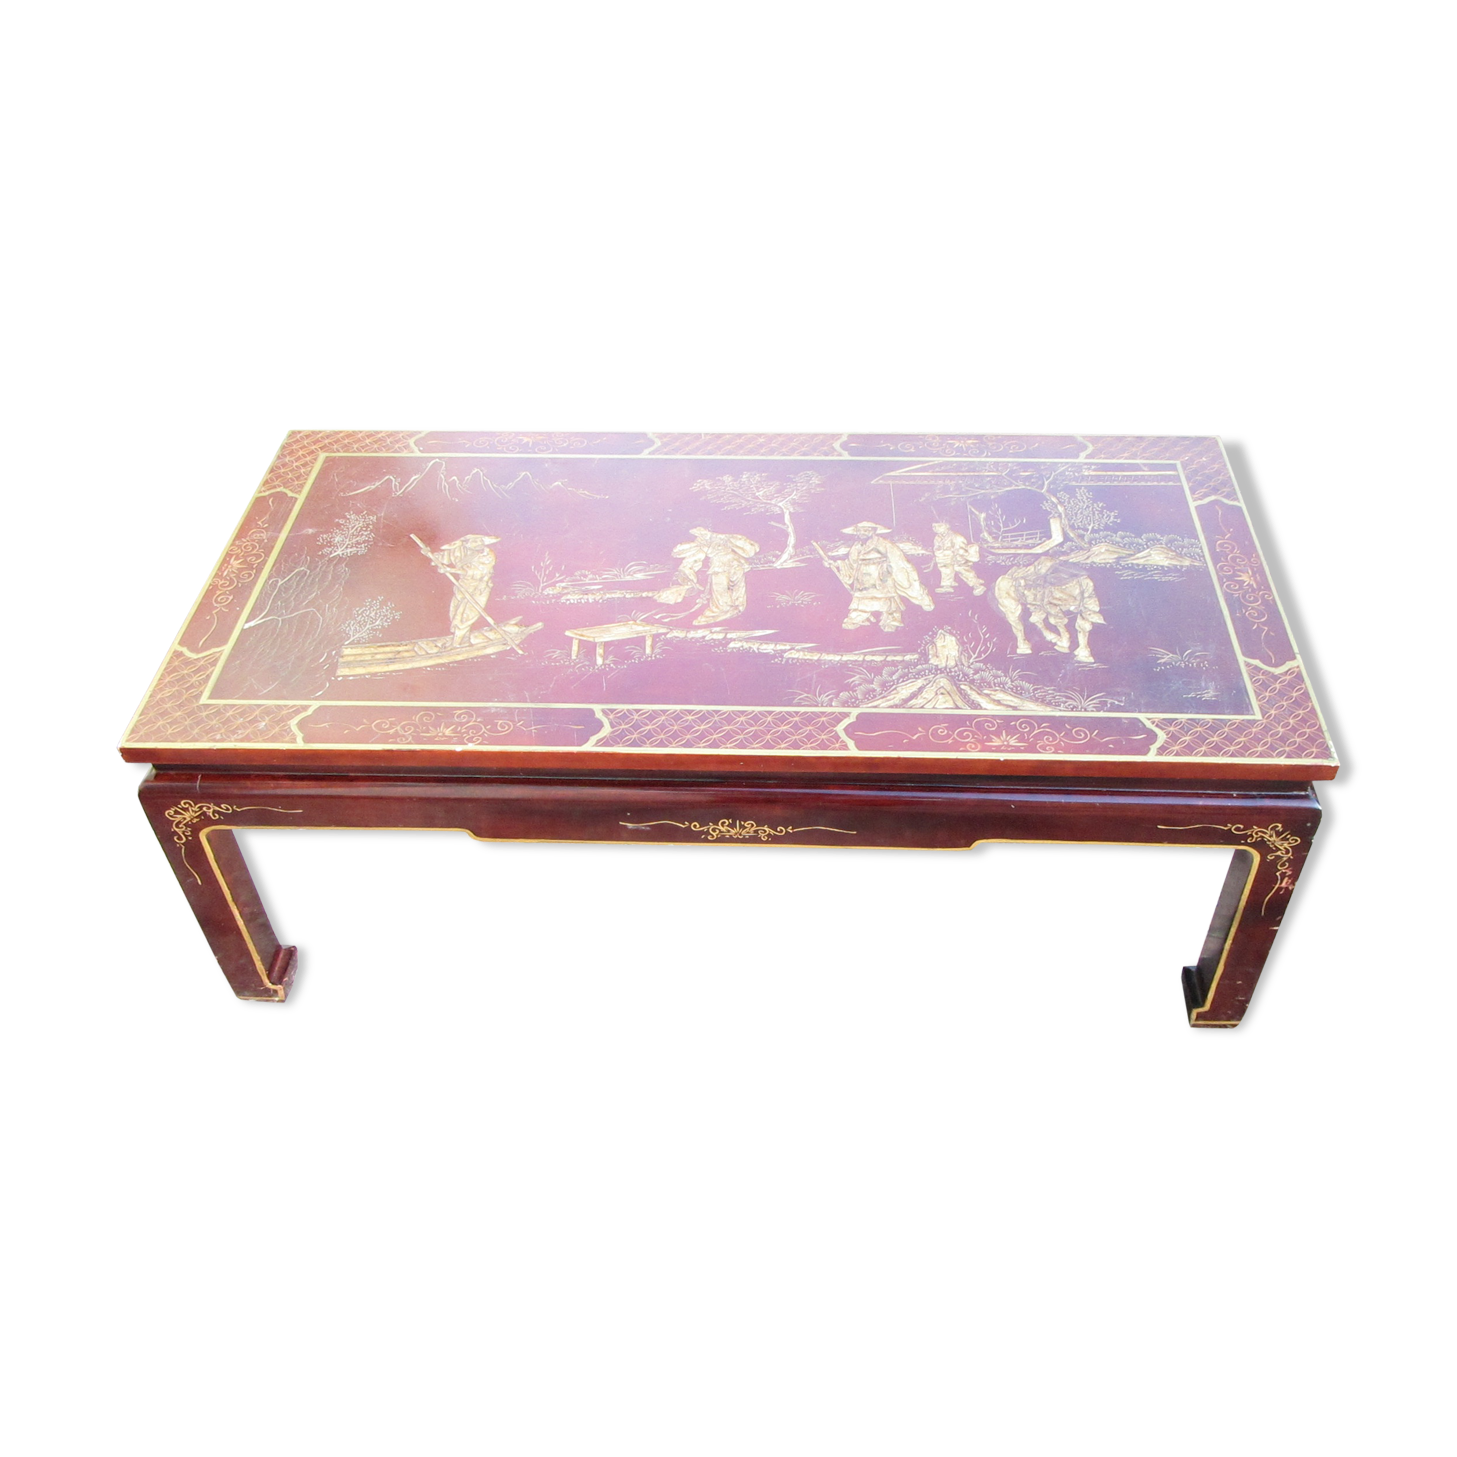 Table Basse Style Chinois En Laque Style Chinois Table Basse Photo Table